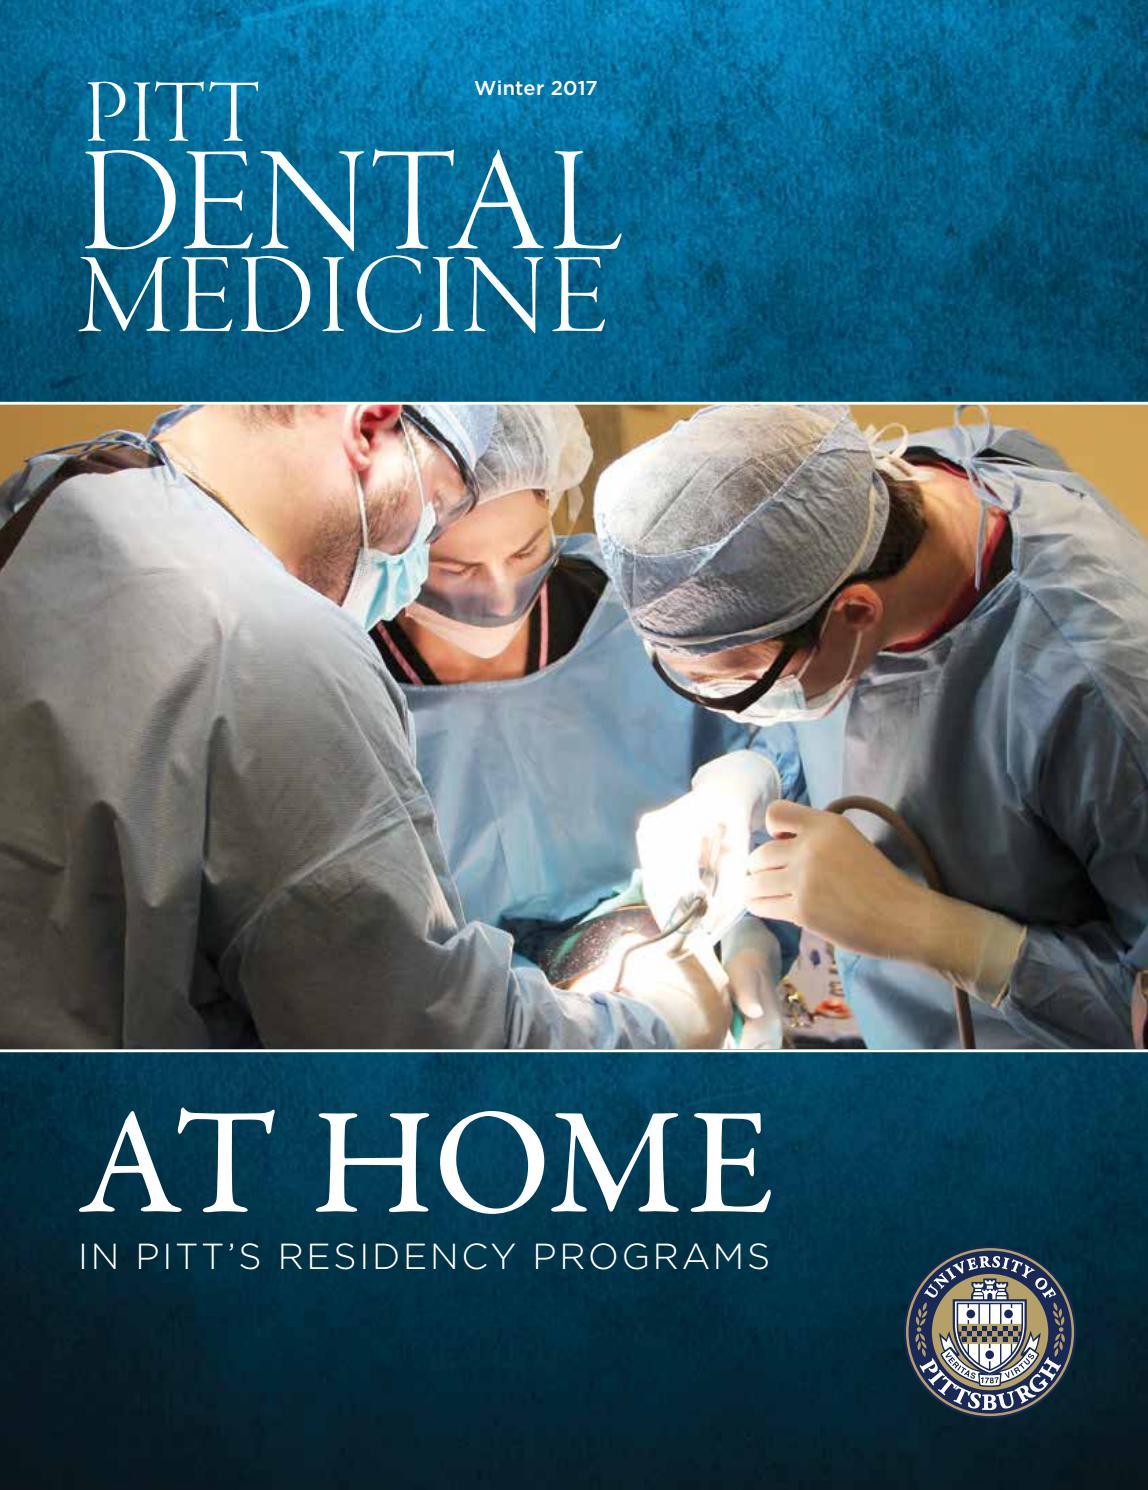 pitt dental medicine magazine winter 2017 by visugroup issuu